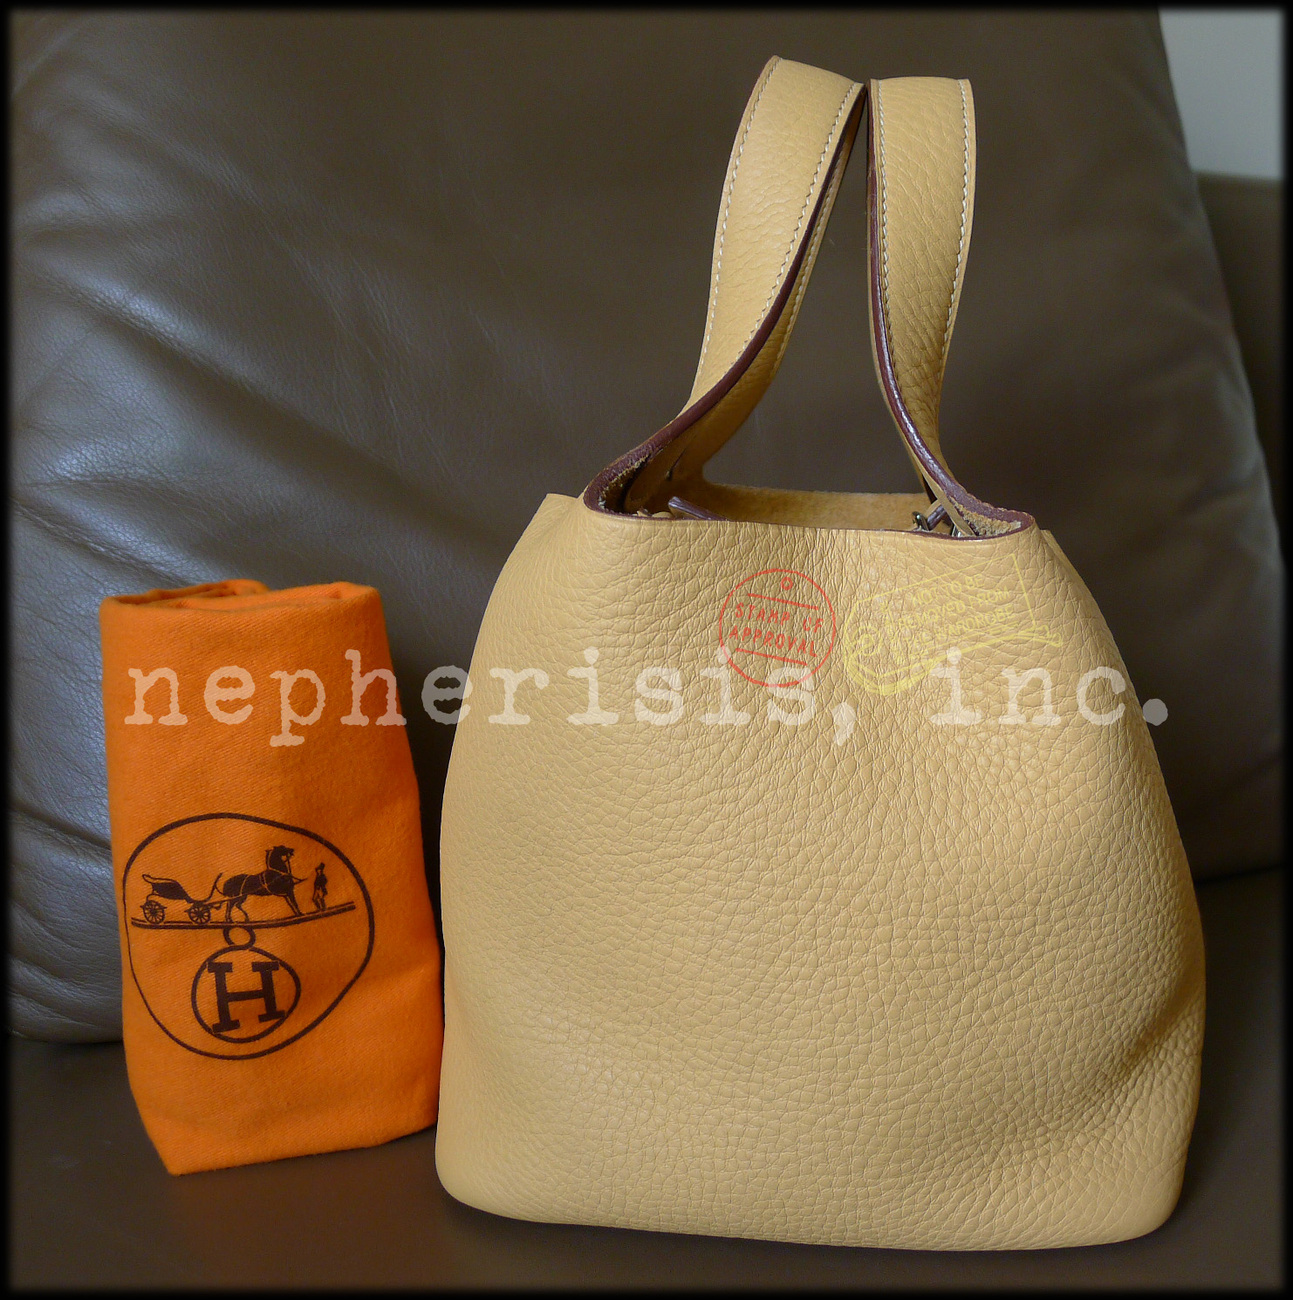 AUTH USED Hermes PICOTIN PM Bag Taurillon and 50 similar items